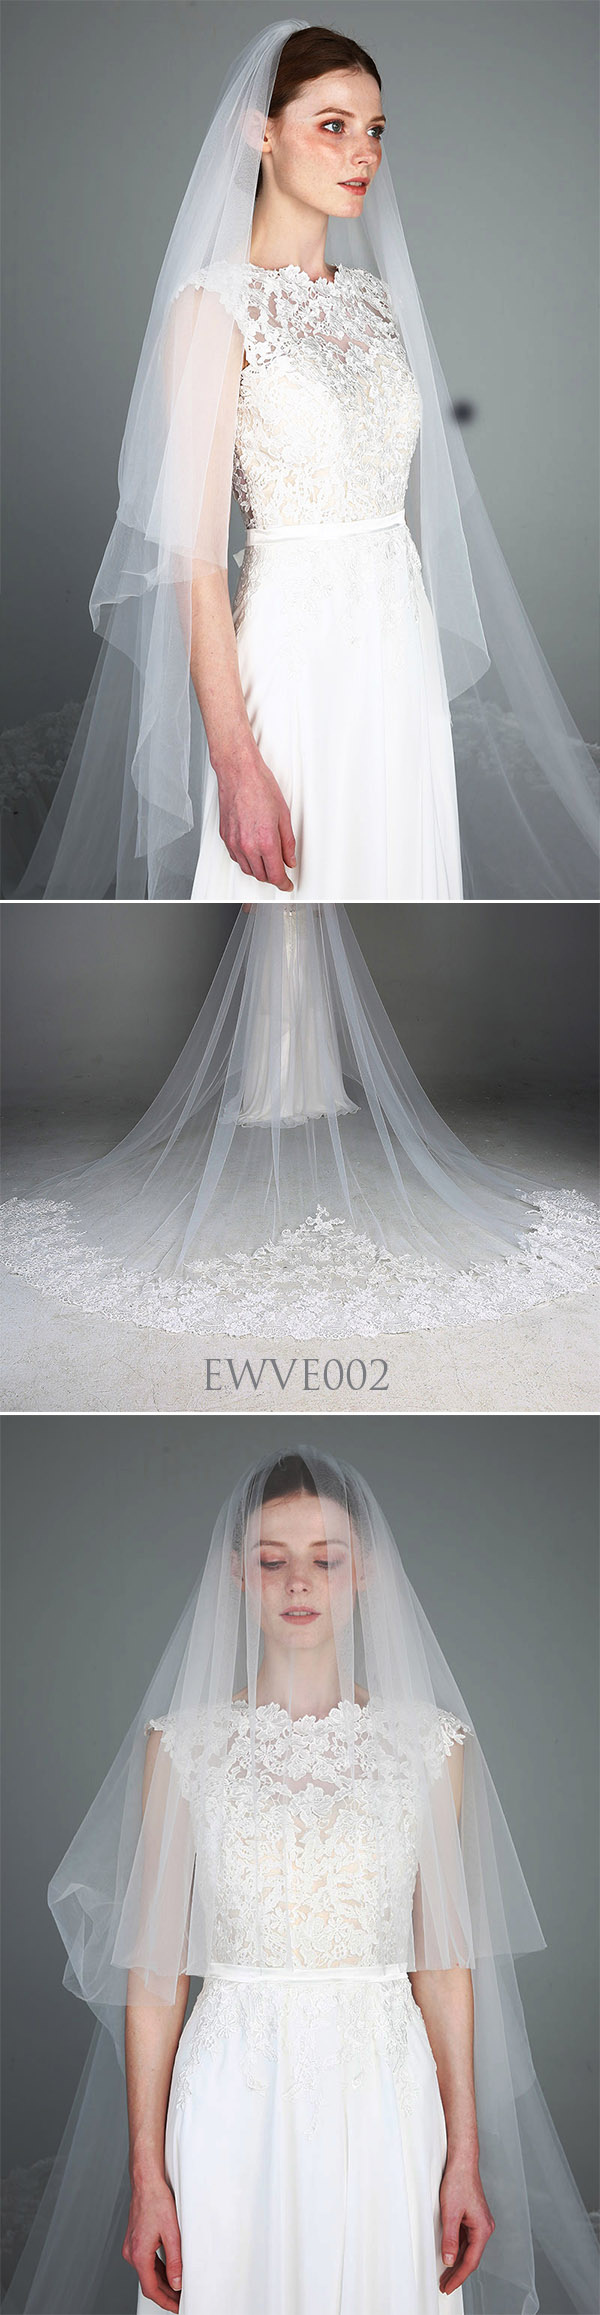 Cathedral Veil Romantic 2 Tiers Lace Wedding Bridal Veil